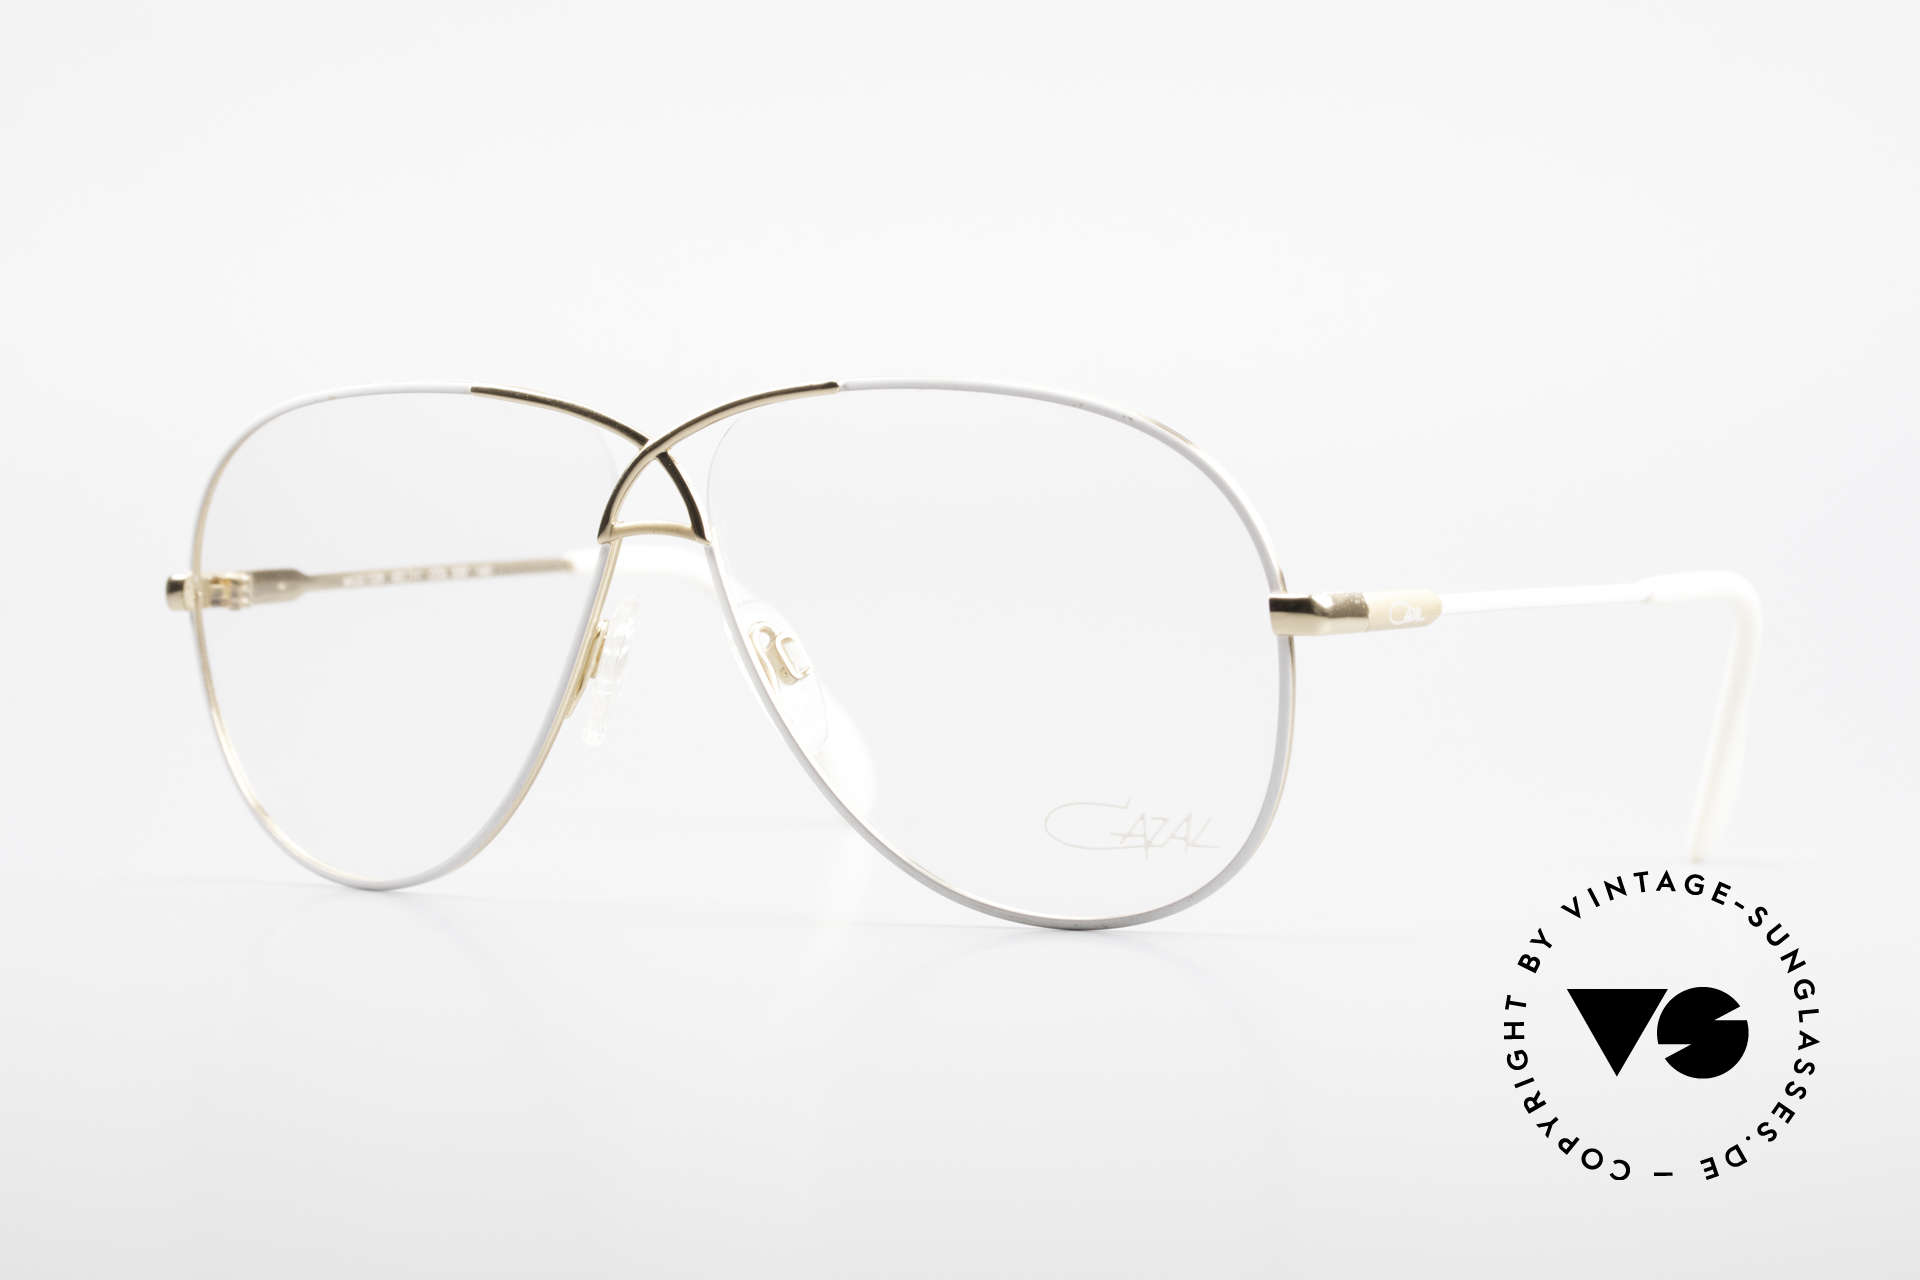 Cazal 728 Aviator Style Vintage Glasses, legendary aviator design from the 80's by Cazal, Made for Men and Women